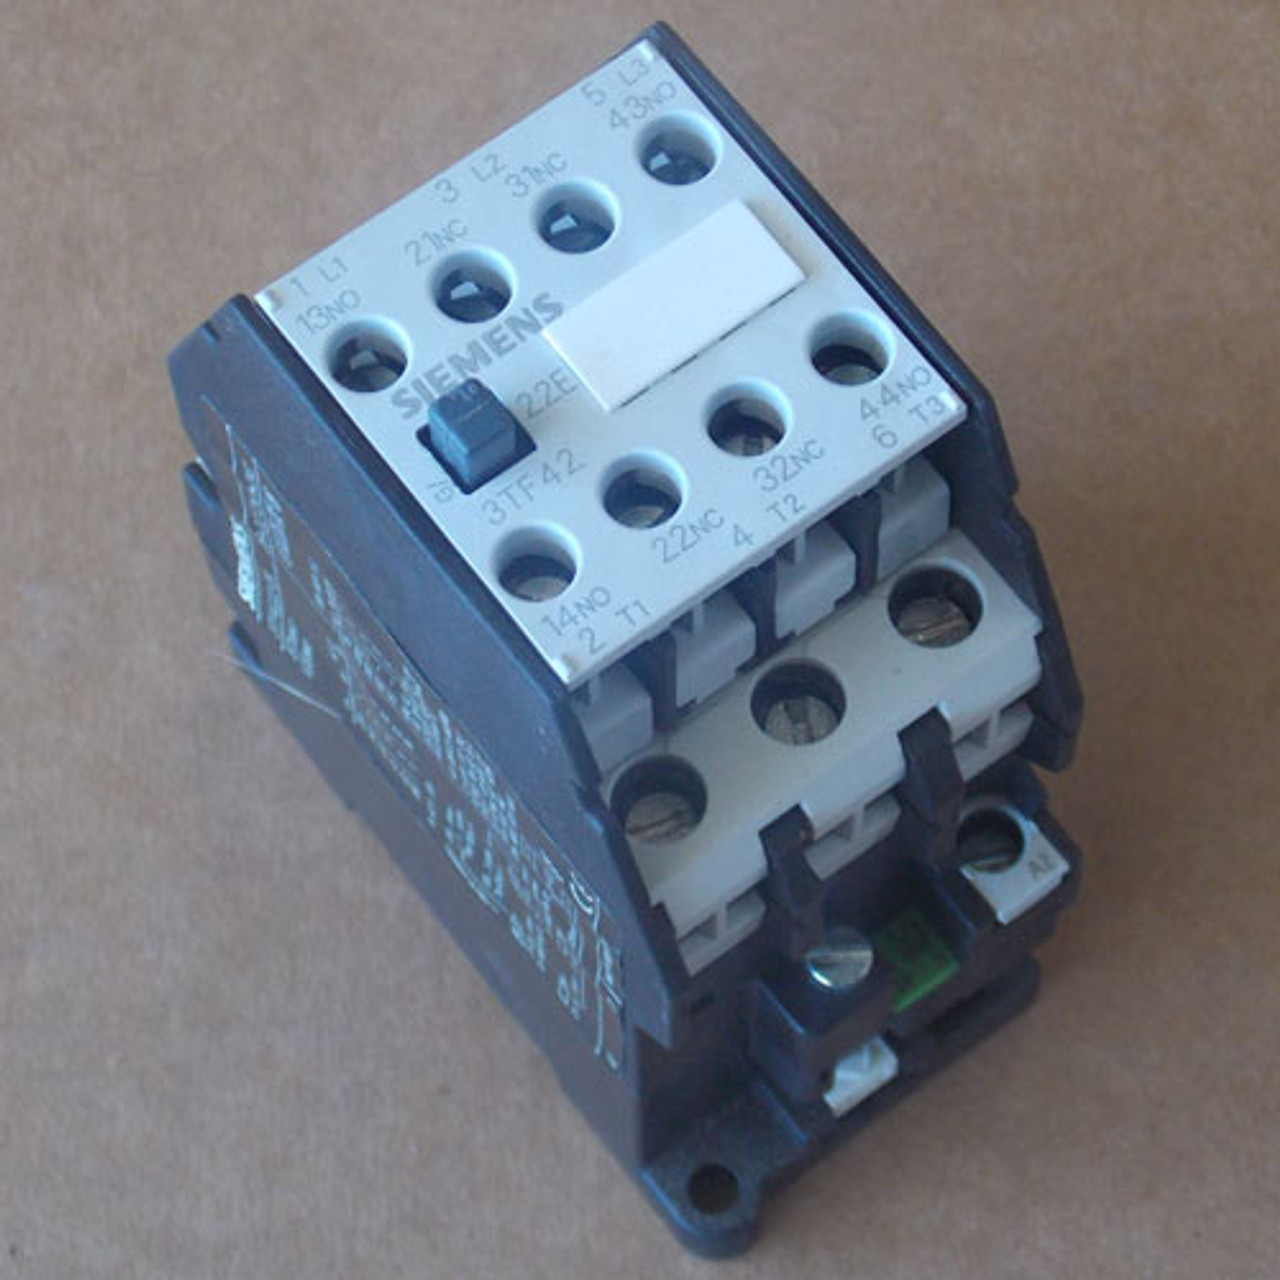 Siemens 3TF42 Magnetic Contactor 3 Phase 30 Amp 208V Coil - Used